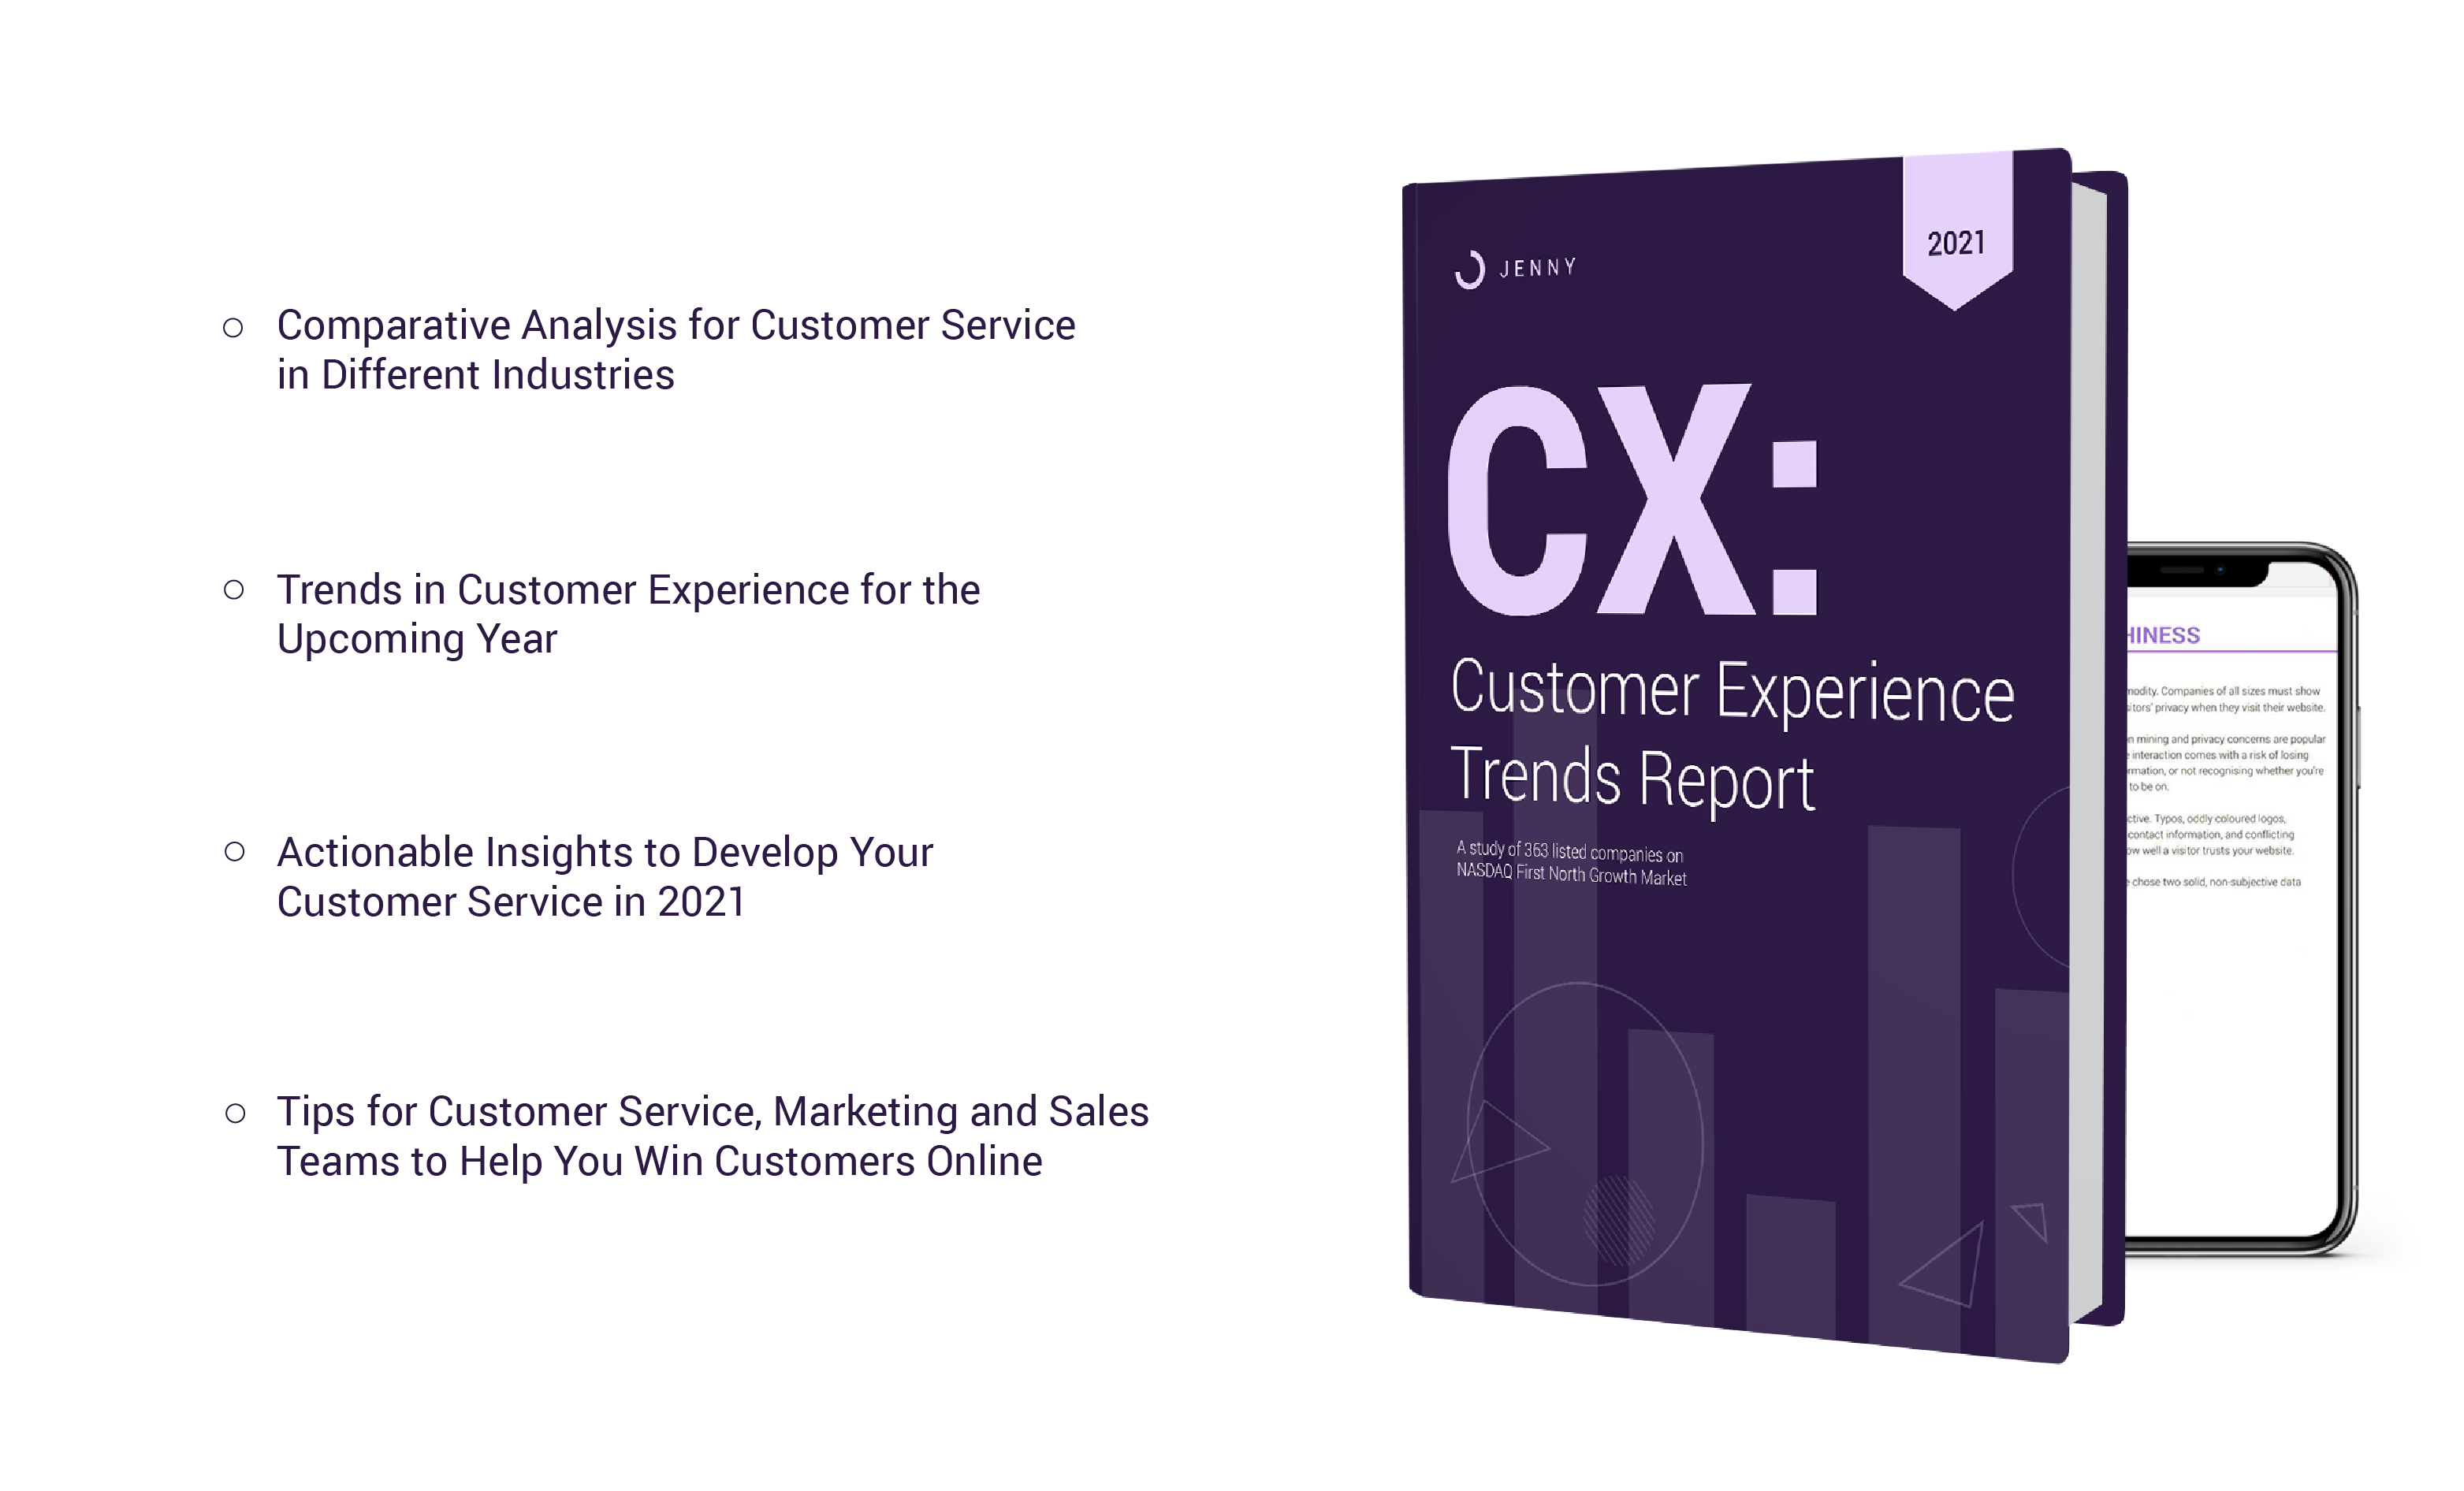 customer experience trends report 2021 getjenny-01